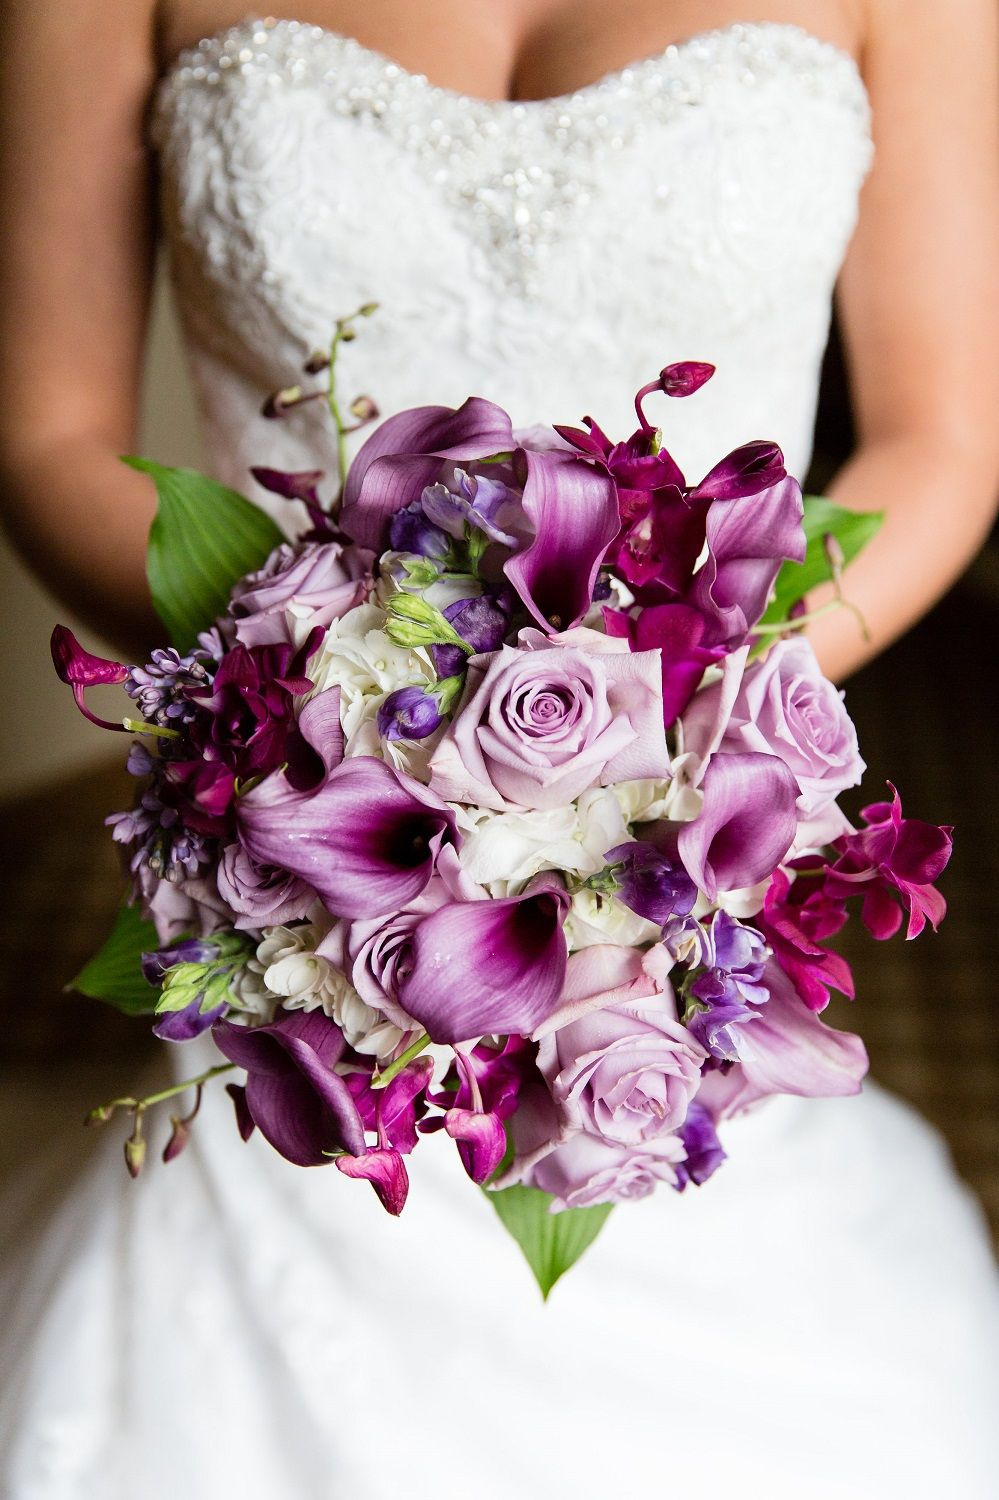 Purple calla lily wedding bouquet wedding flowers purple wedding purple calla lily wedding bouquet wedding flowers purple wedding bouquet purple calla lily bouquet izmirmasajfo